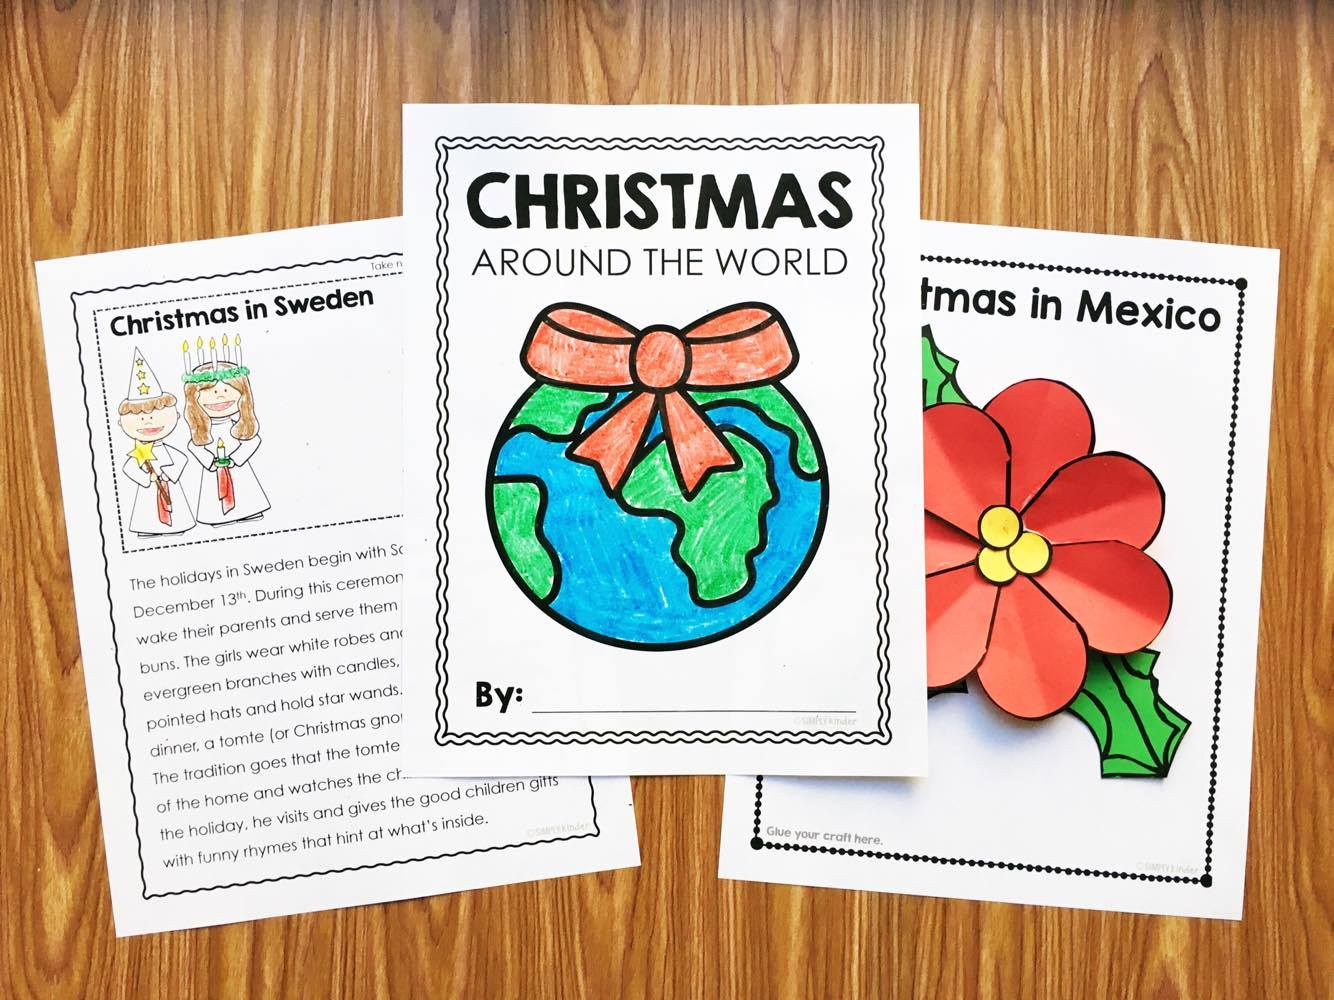 Christmas Around the World Research, Reports, and Crafts. You will be amazed at the stories your kiddos come up with when given the right kind of support. Perfect for Kindergarten and first grade.